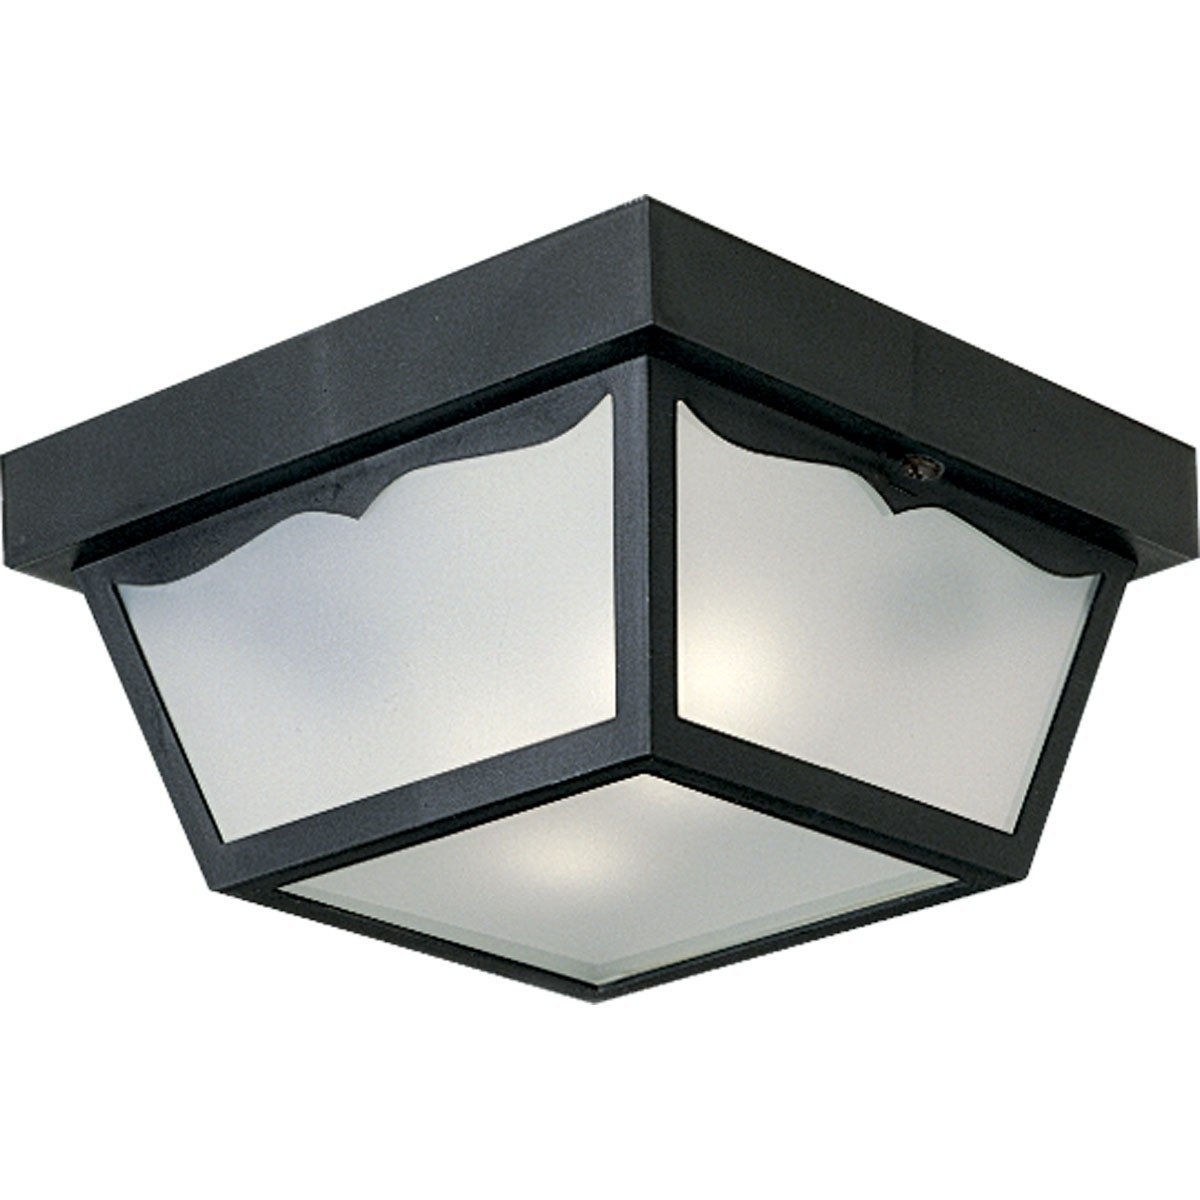 Inspiration about 60W Outdoor Flush Mount Non Metallic Ceiling Light – Progress Within Black Outdoor Ceiling Lights (#5 of 15)